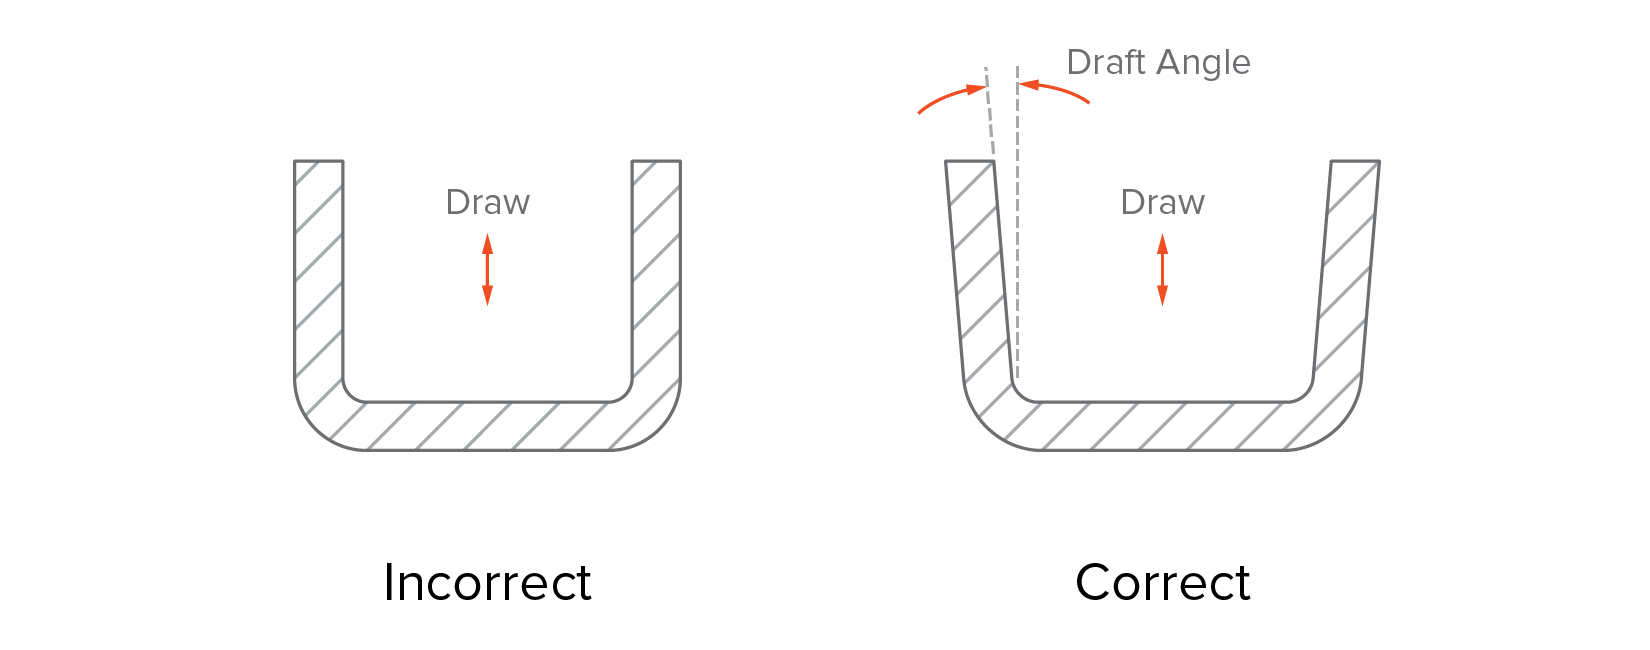 Add a draft angle (minimum 2o)to all vertical walls